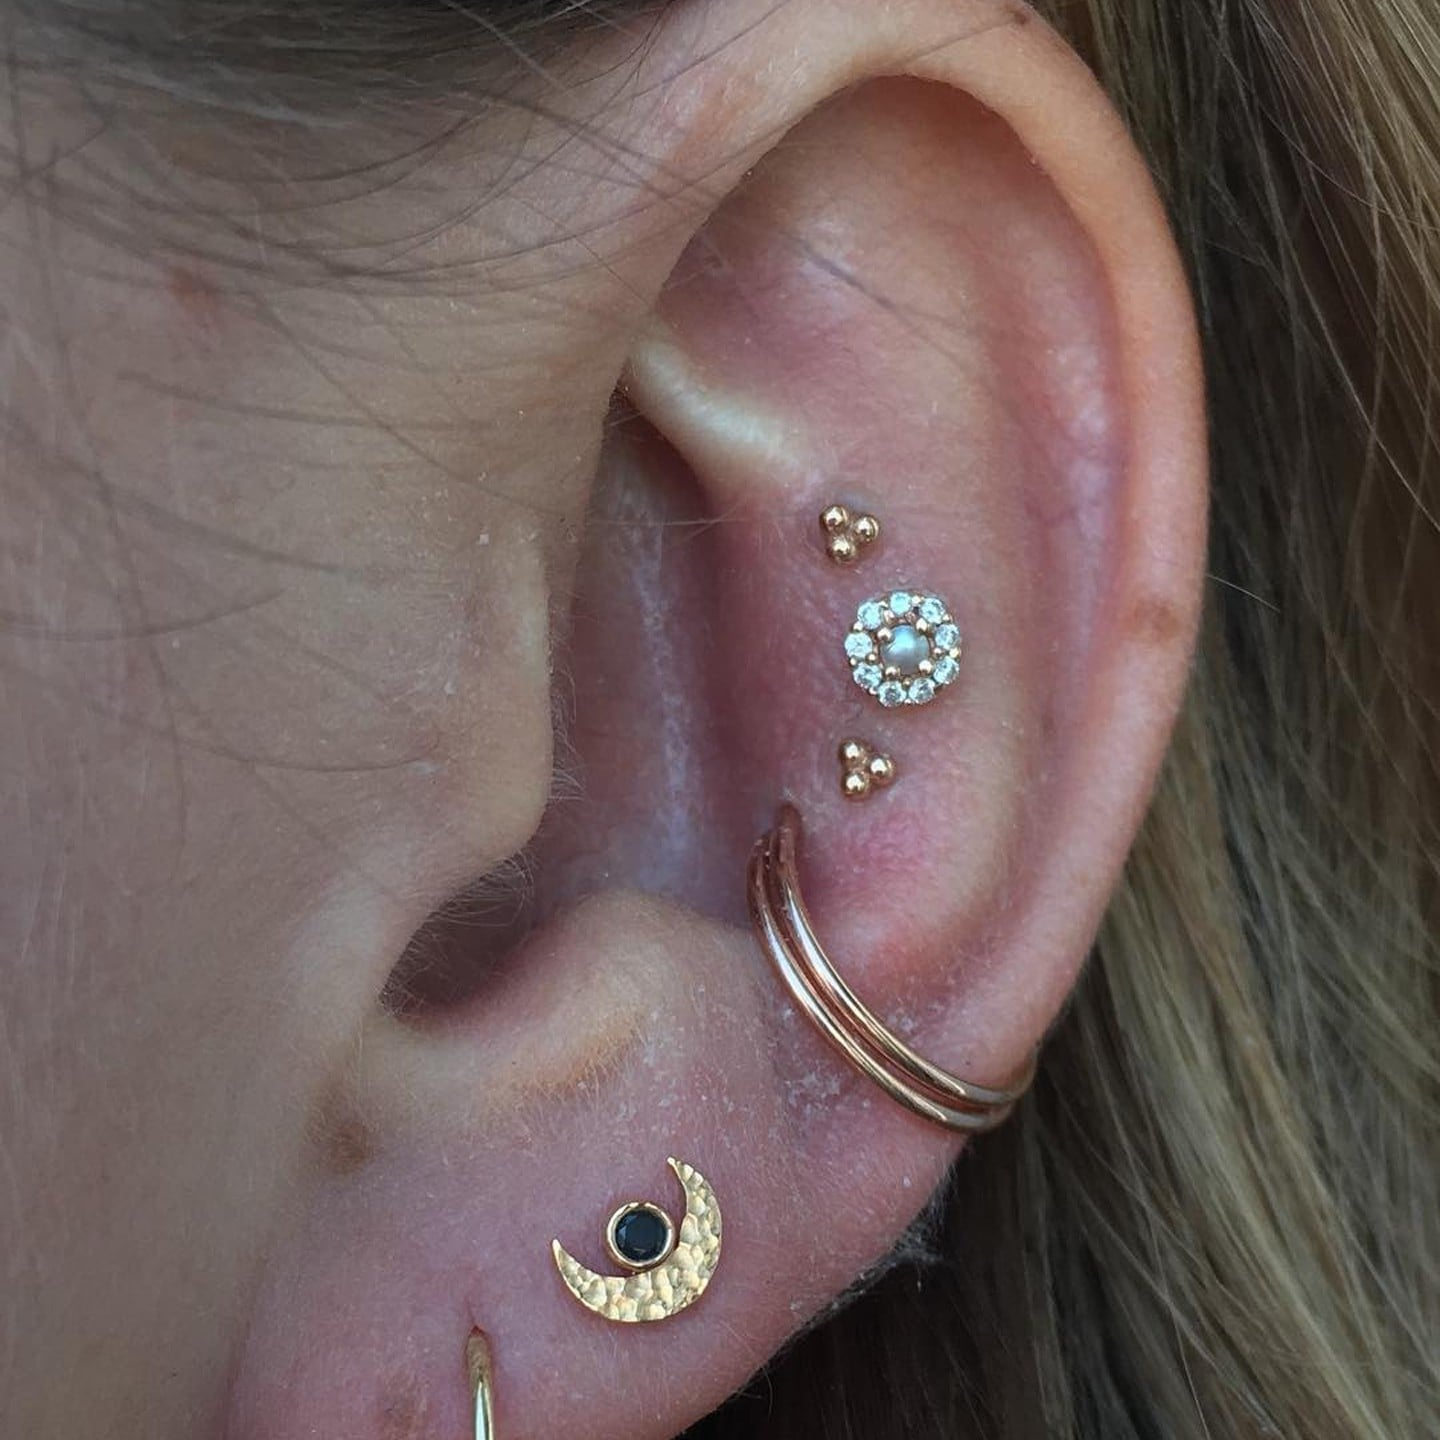 Triple Conch Piercing Trend Popsugar Fashion Australia